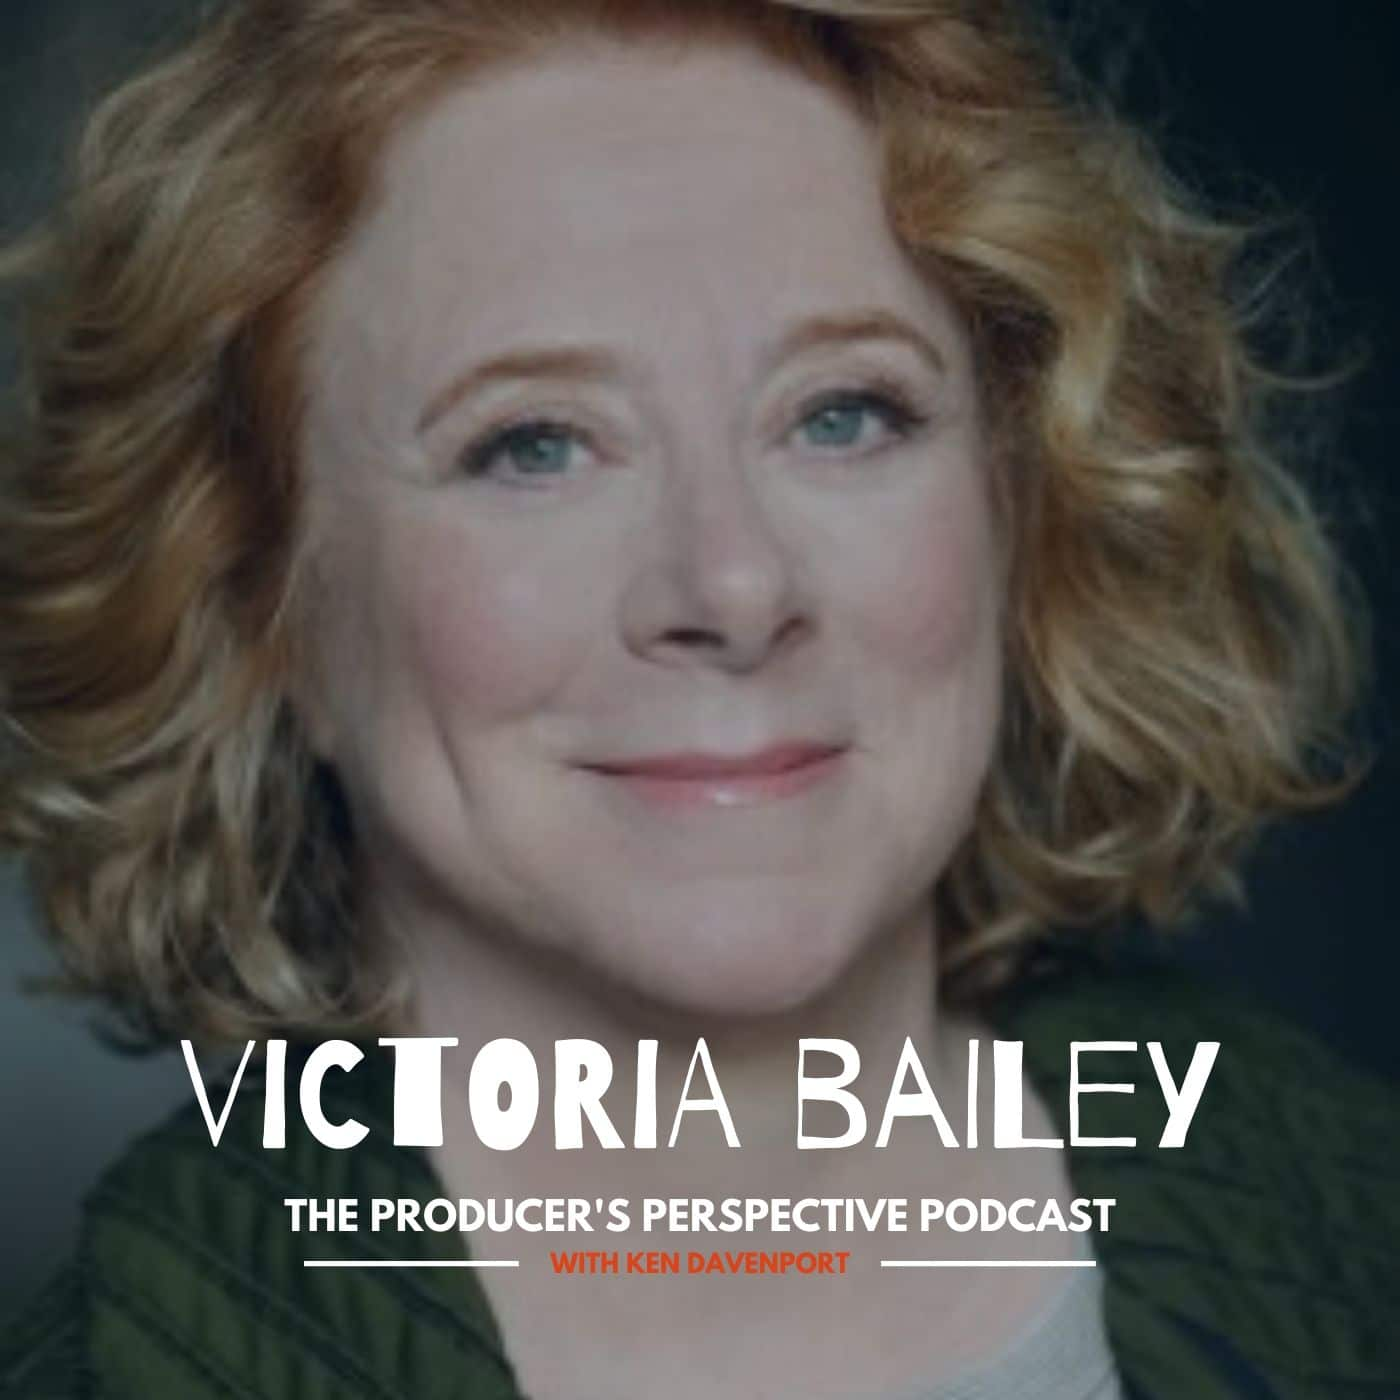 Ken Davenport's The Producer's Perspective Podcast Episode 28 - Victoria Bailey